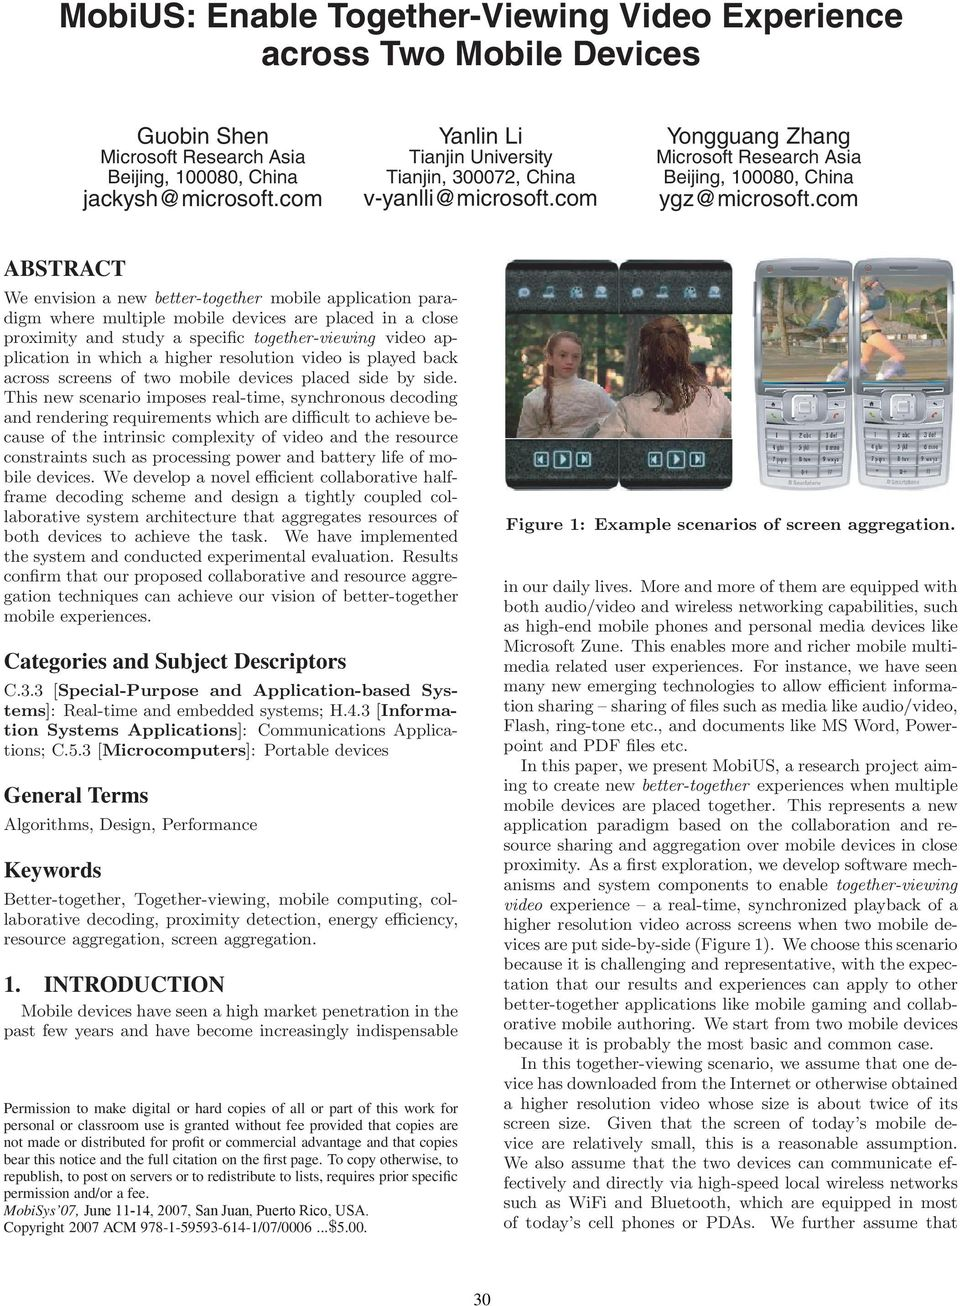 com ABSTRACT We envision a new better-together mobile application paradigm where multiple mobile devices are placed in a close proximity and study a specific together-viewing video application in